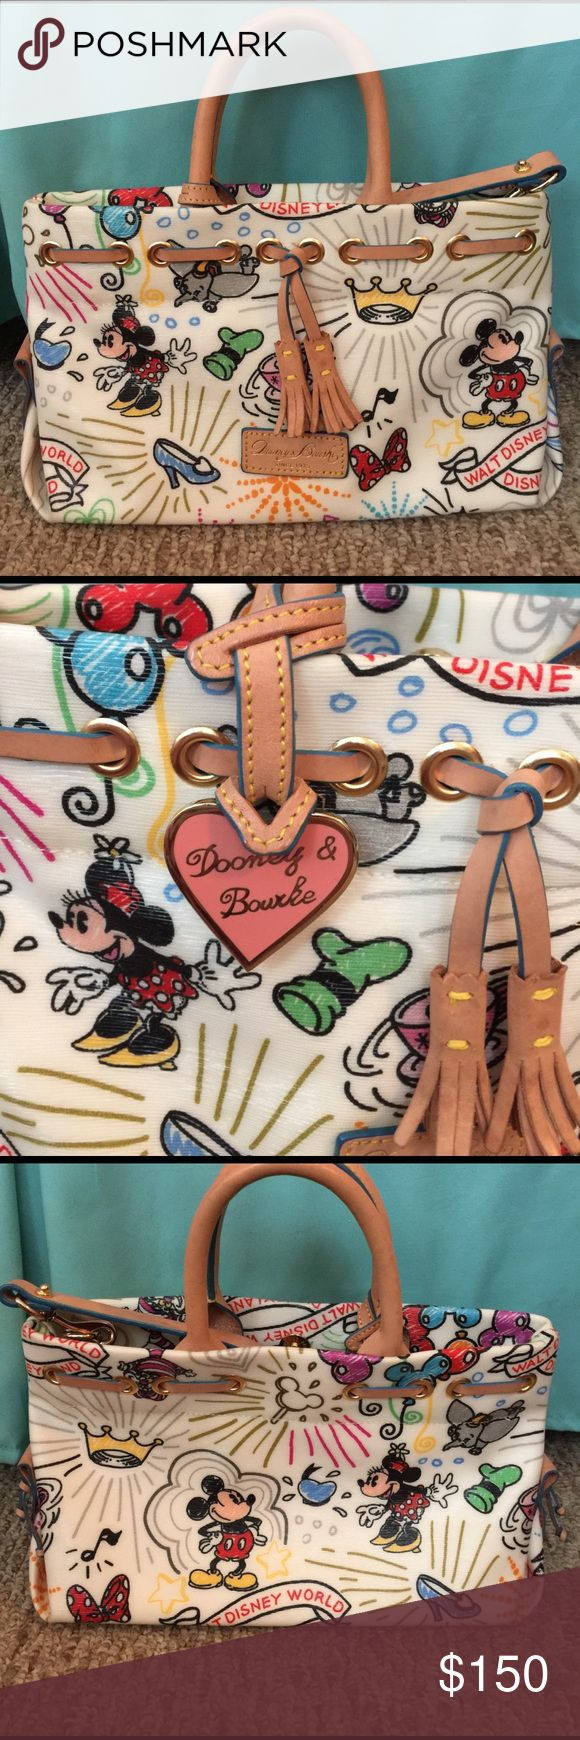 Dooney & Bourke Disney Parks Handbag/Crossbody SO CUTE! Displays Mickey and Minnie! I purchased this bag a few years ago in Disney World. Carried Twice. The only blemish I see is on the inside of the bag. Maybe a pen mark. 🤡NO TRADES🤡 please make offers within the app- will not discuss price on feed. Dooney & Bourke Bags Crossbody Bags